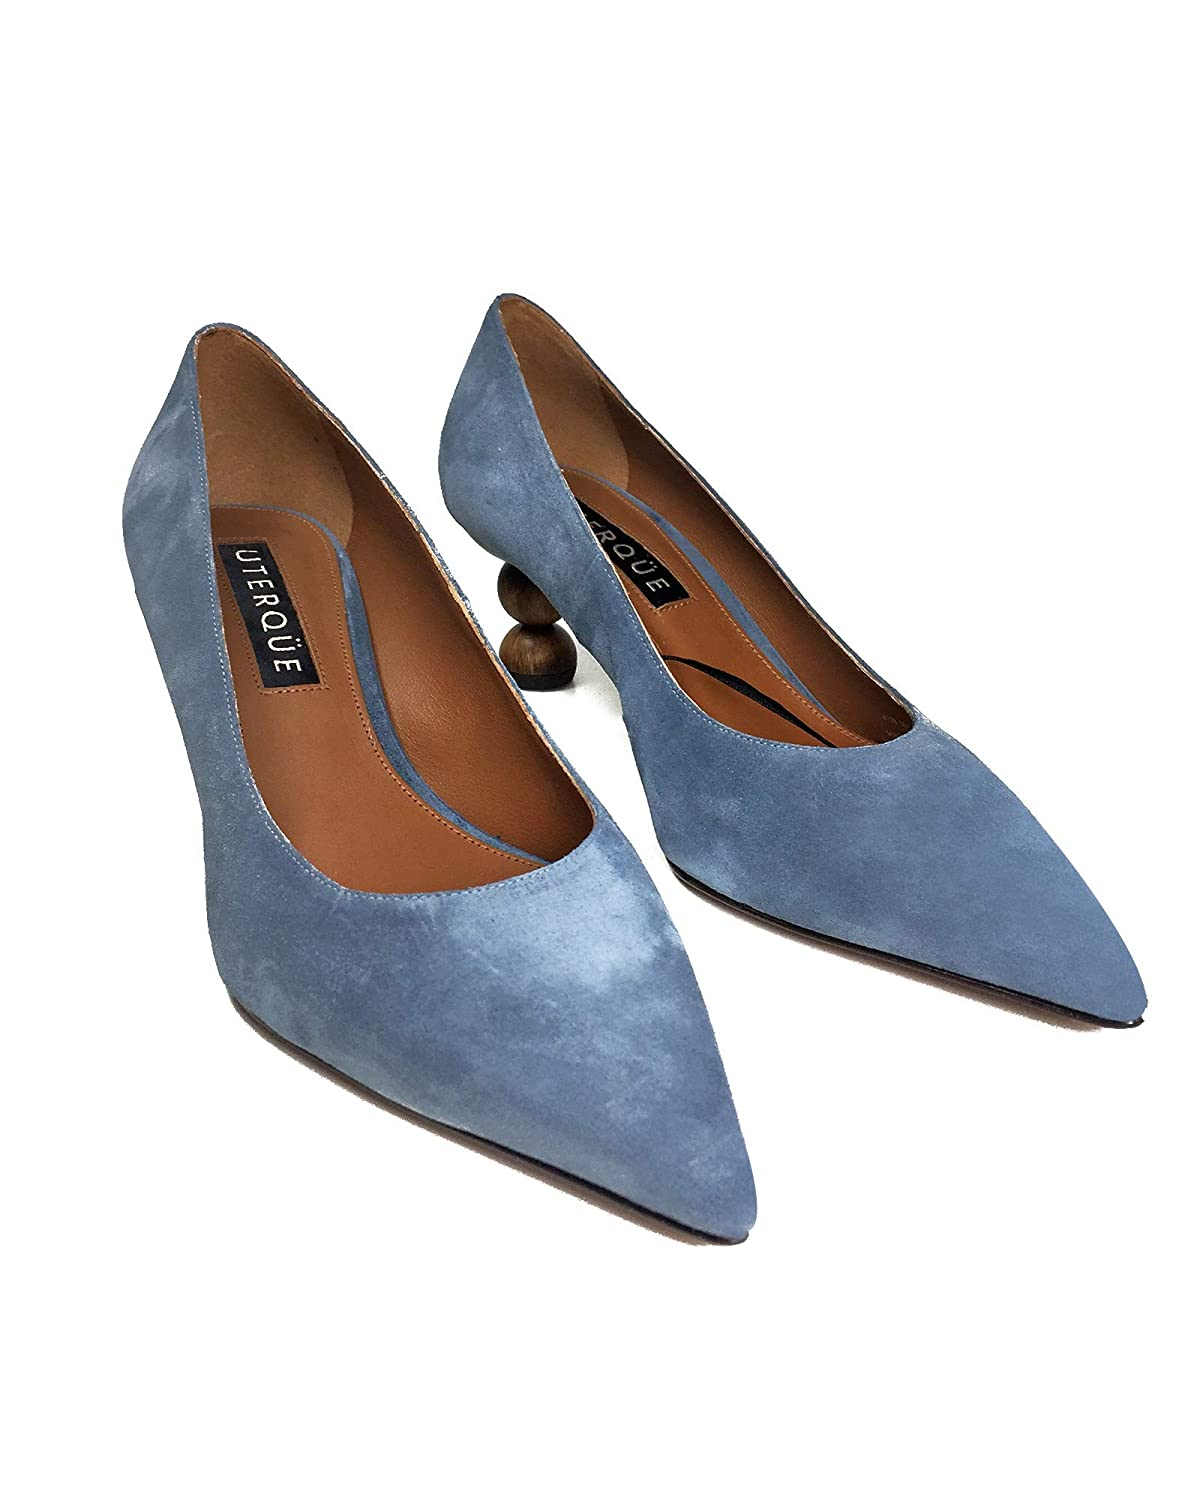 3350b9b7fad3c Uterque Women's Suede Court Shoes with Geometric Heels 4128/051 ...